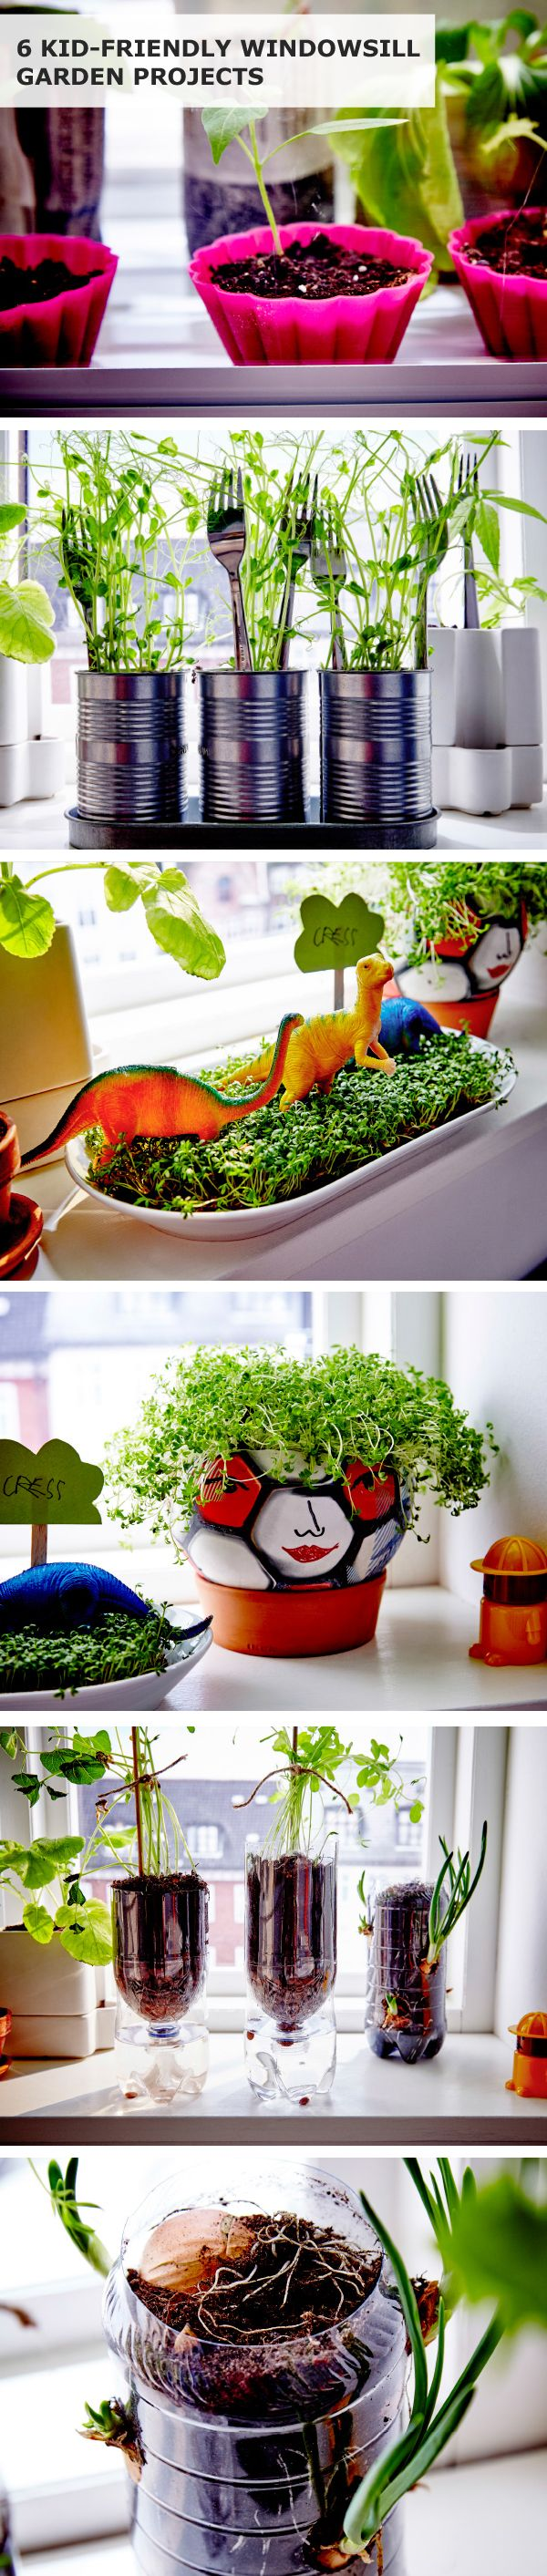 Click for 6 kid-friendly windowsill garden projects! These easy (and tasty) plant projects use old or leftover things from around the house and can be grown right on your windowsill.